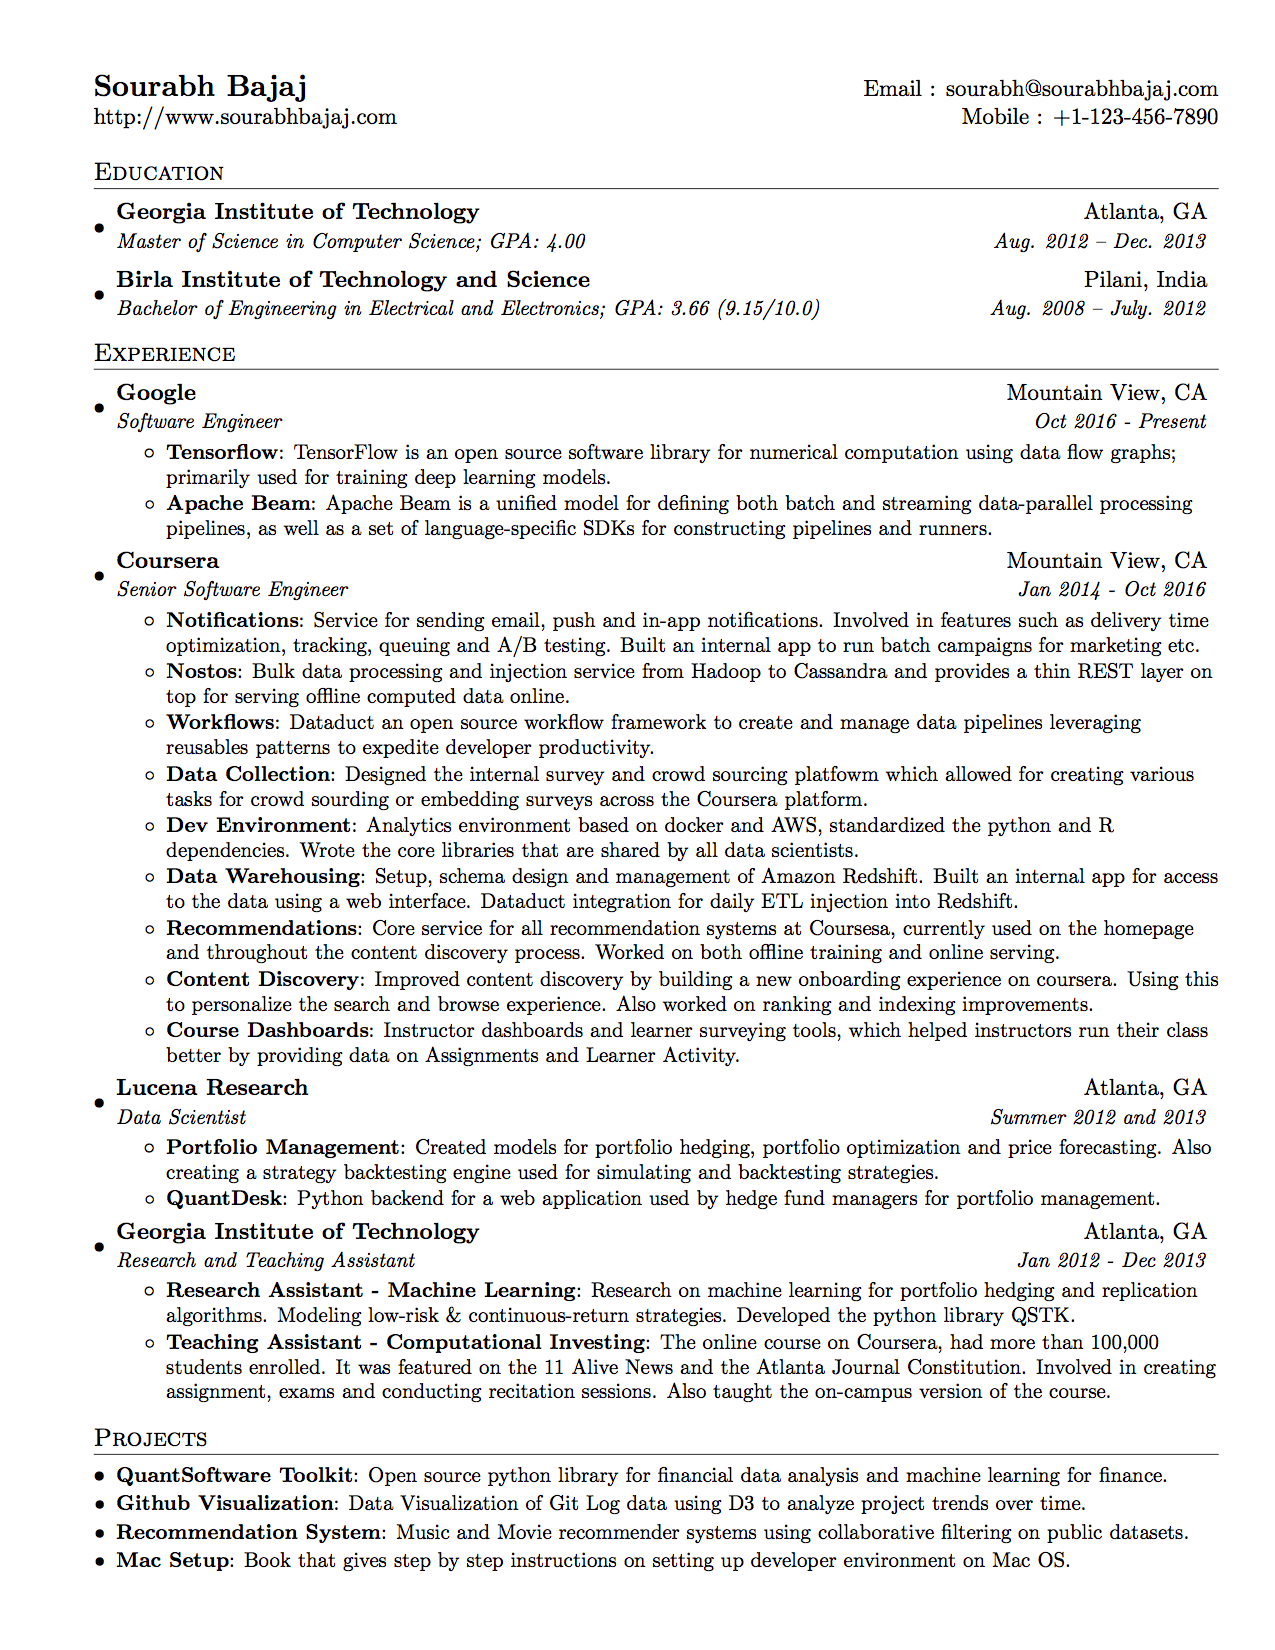 Technical Resume Tips Tips On Building A Data Scientist S Resume Michael L Peng Medium